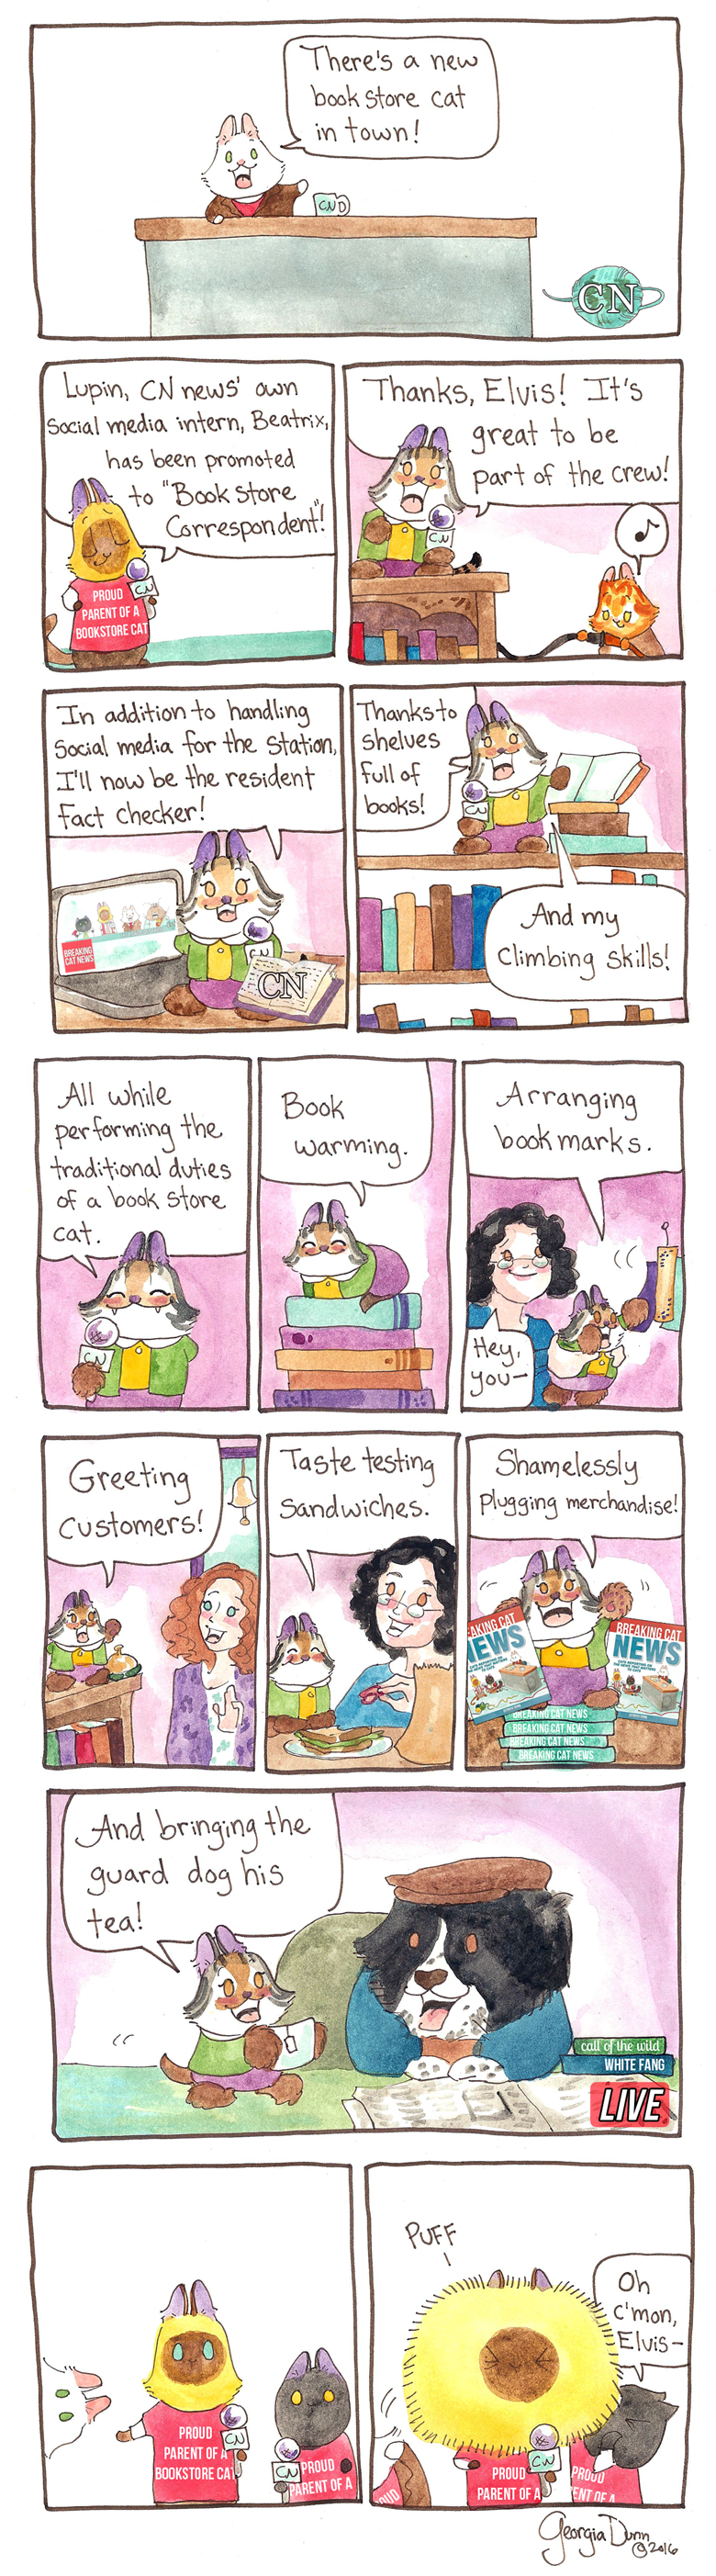 There's a new bookstore cat in town!